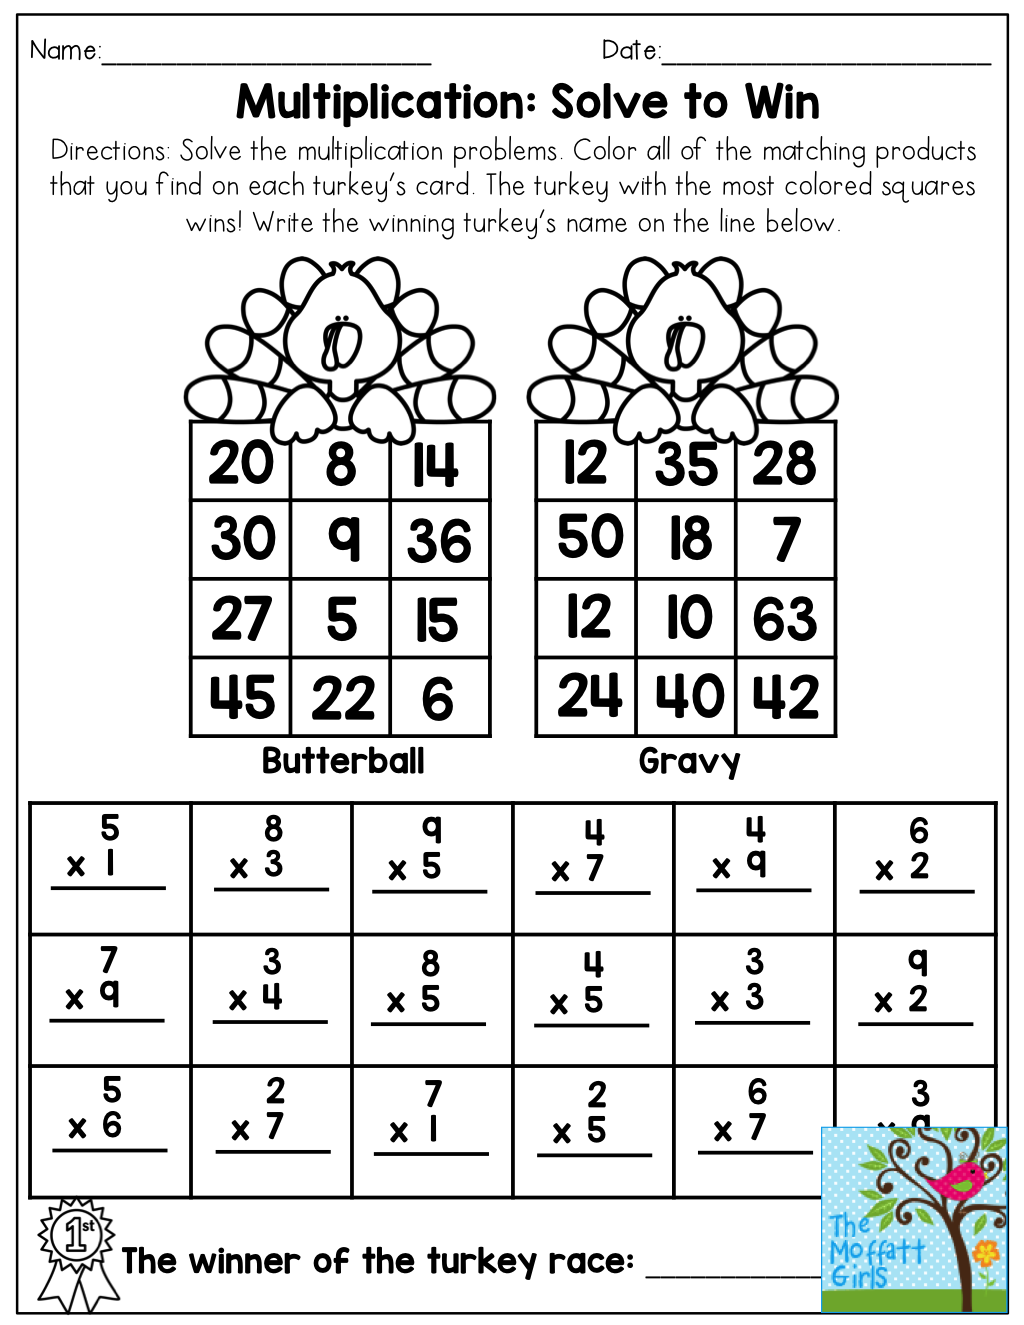 Multiplication Solve To Win See Which Turkey Wins The